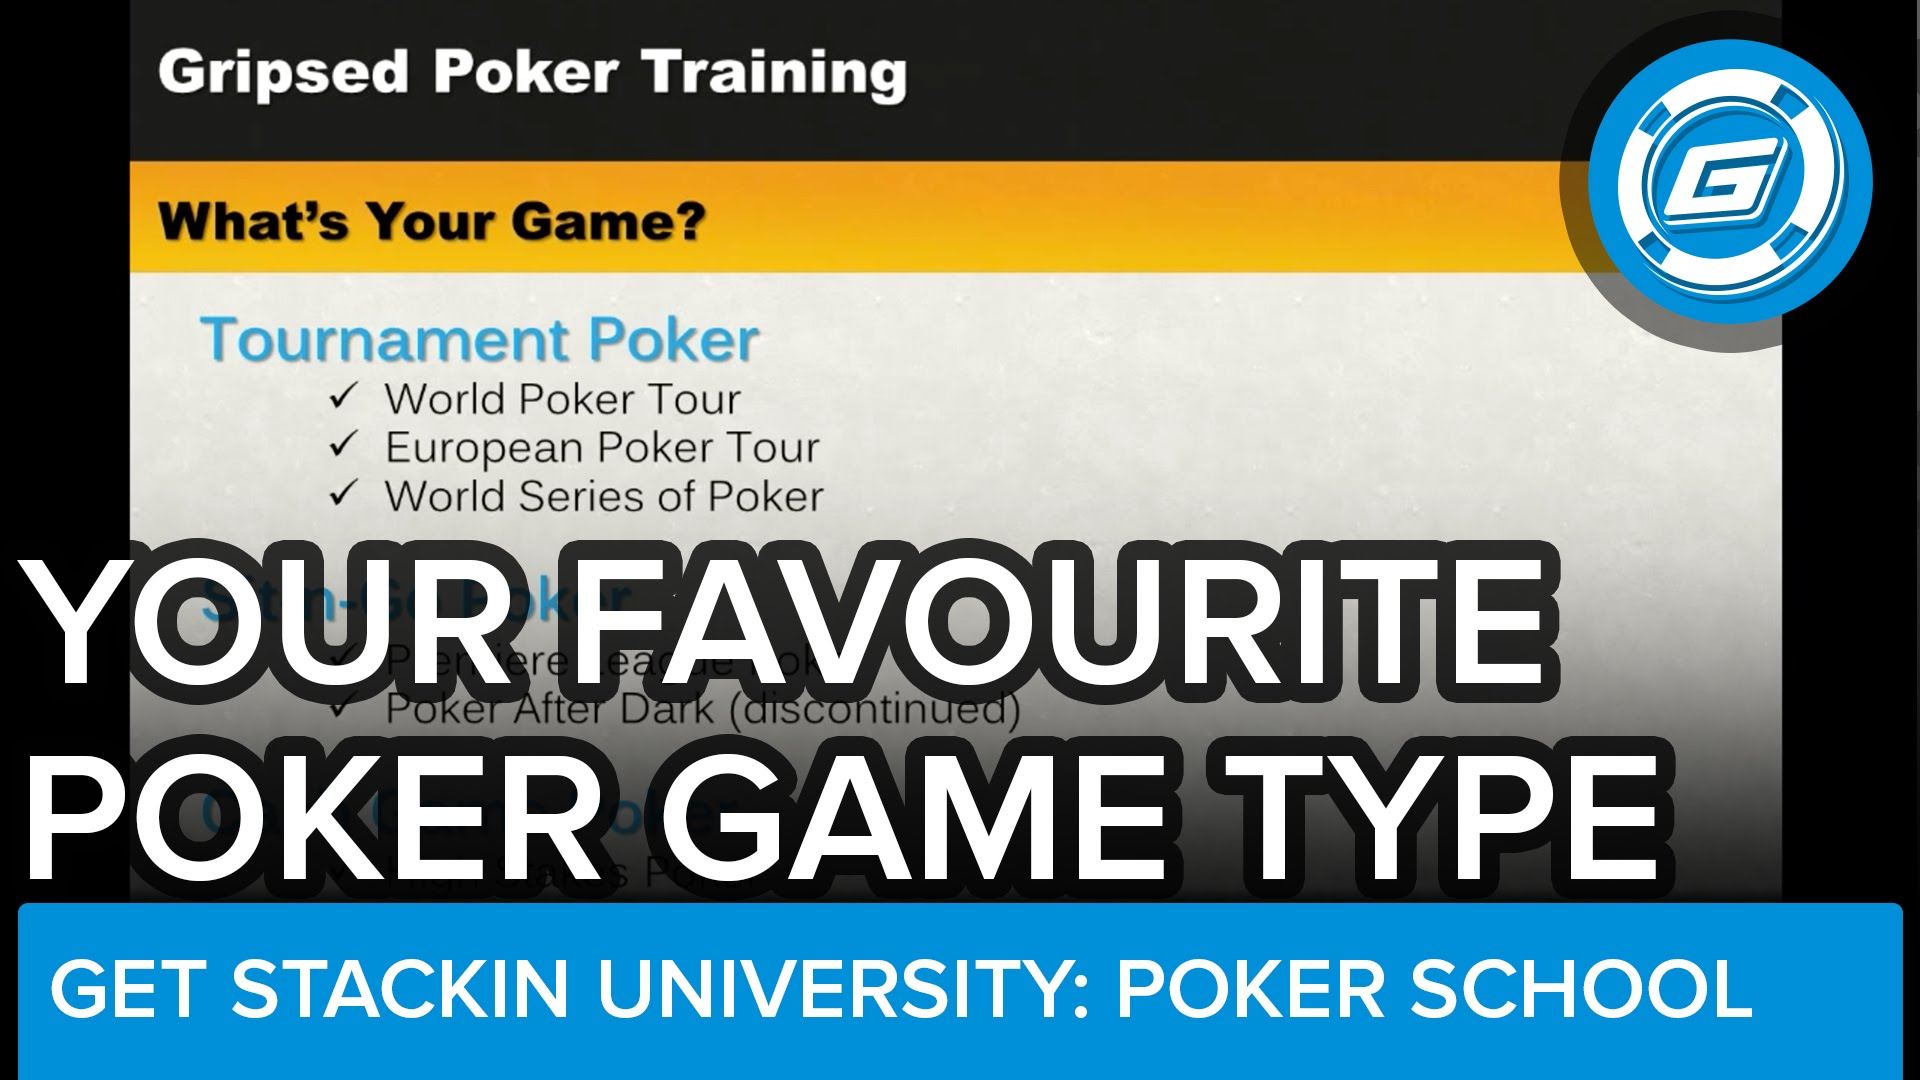 What Type Of Poker Should You Play? Cash Games, Sit 'N Go's Or Multi-Table Tournaments? - LESSON #23